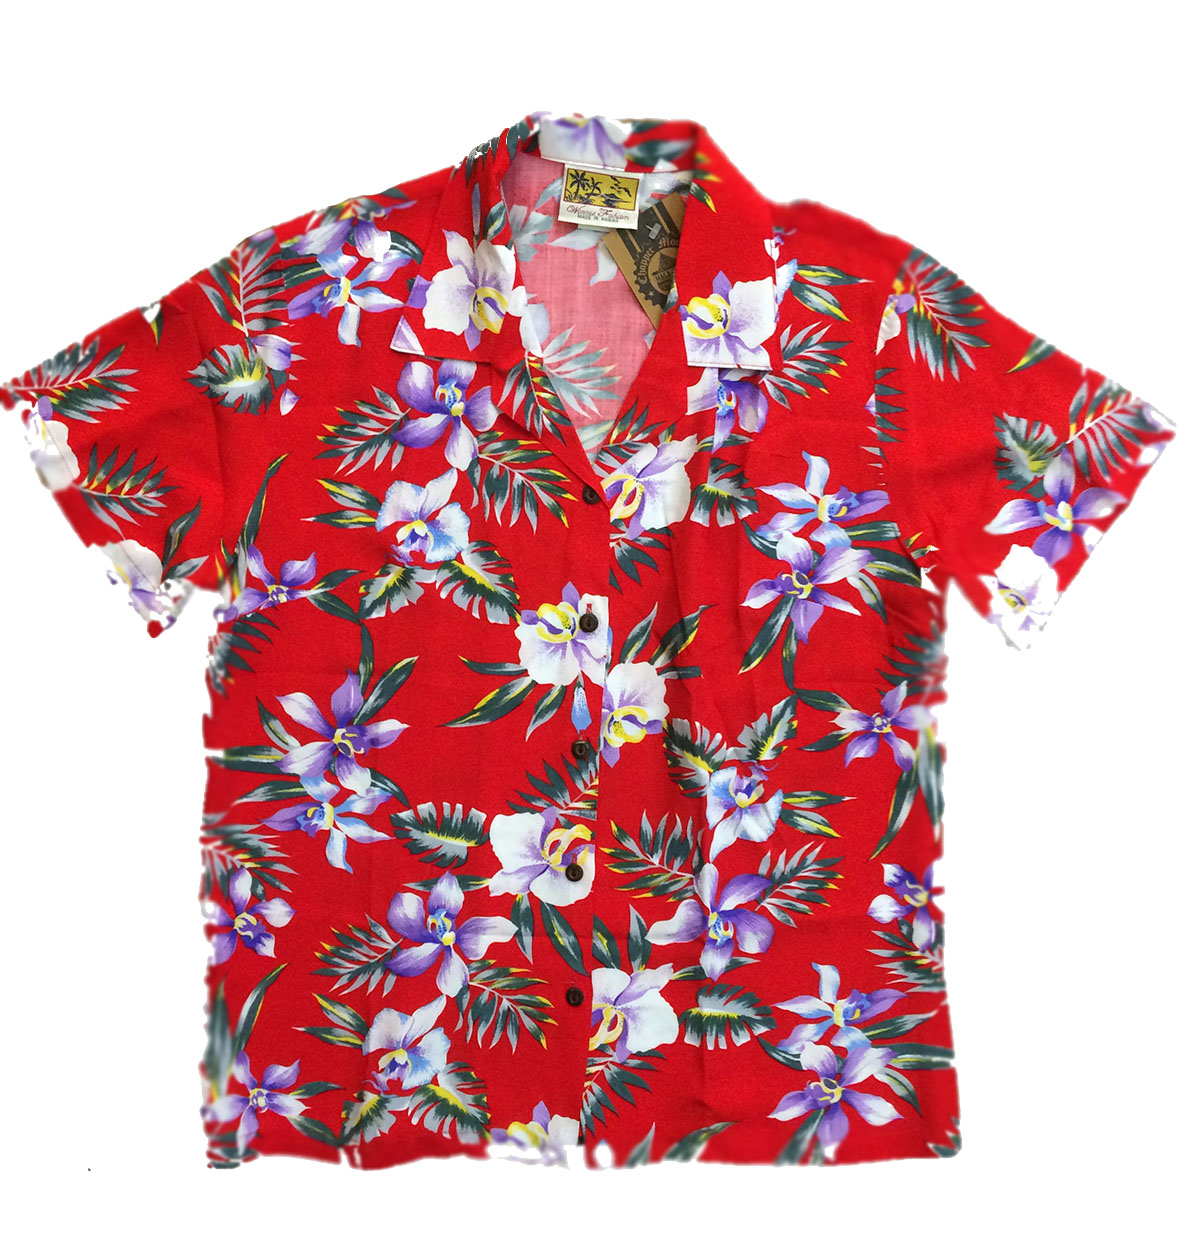 ef78bbf65 CAMISA HAWAIANA CHICA WINNIE FASHION ALOHA ORCHID RED